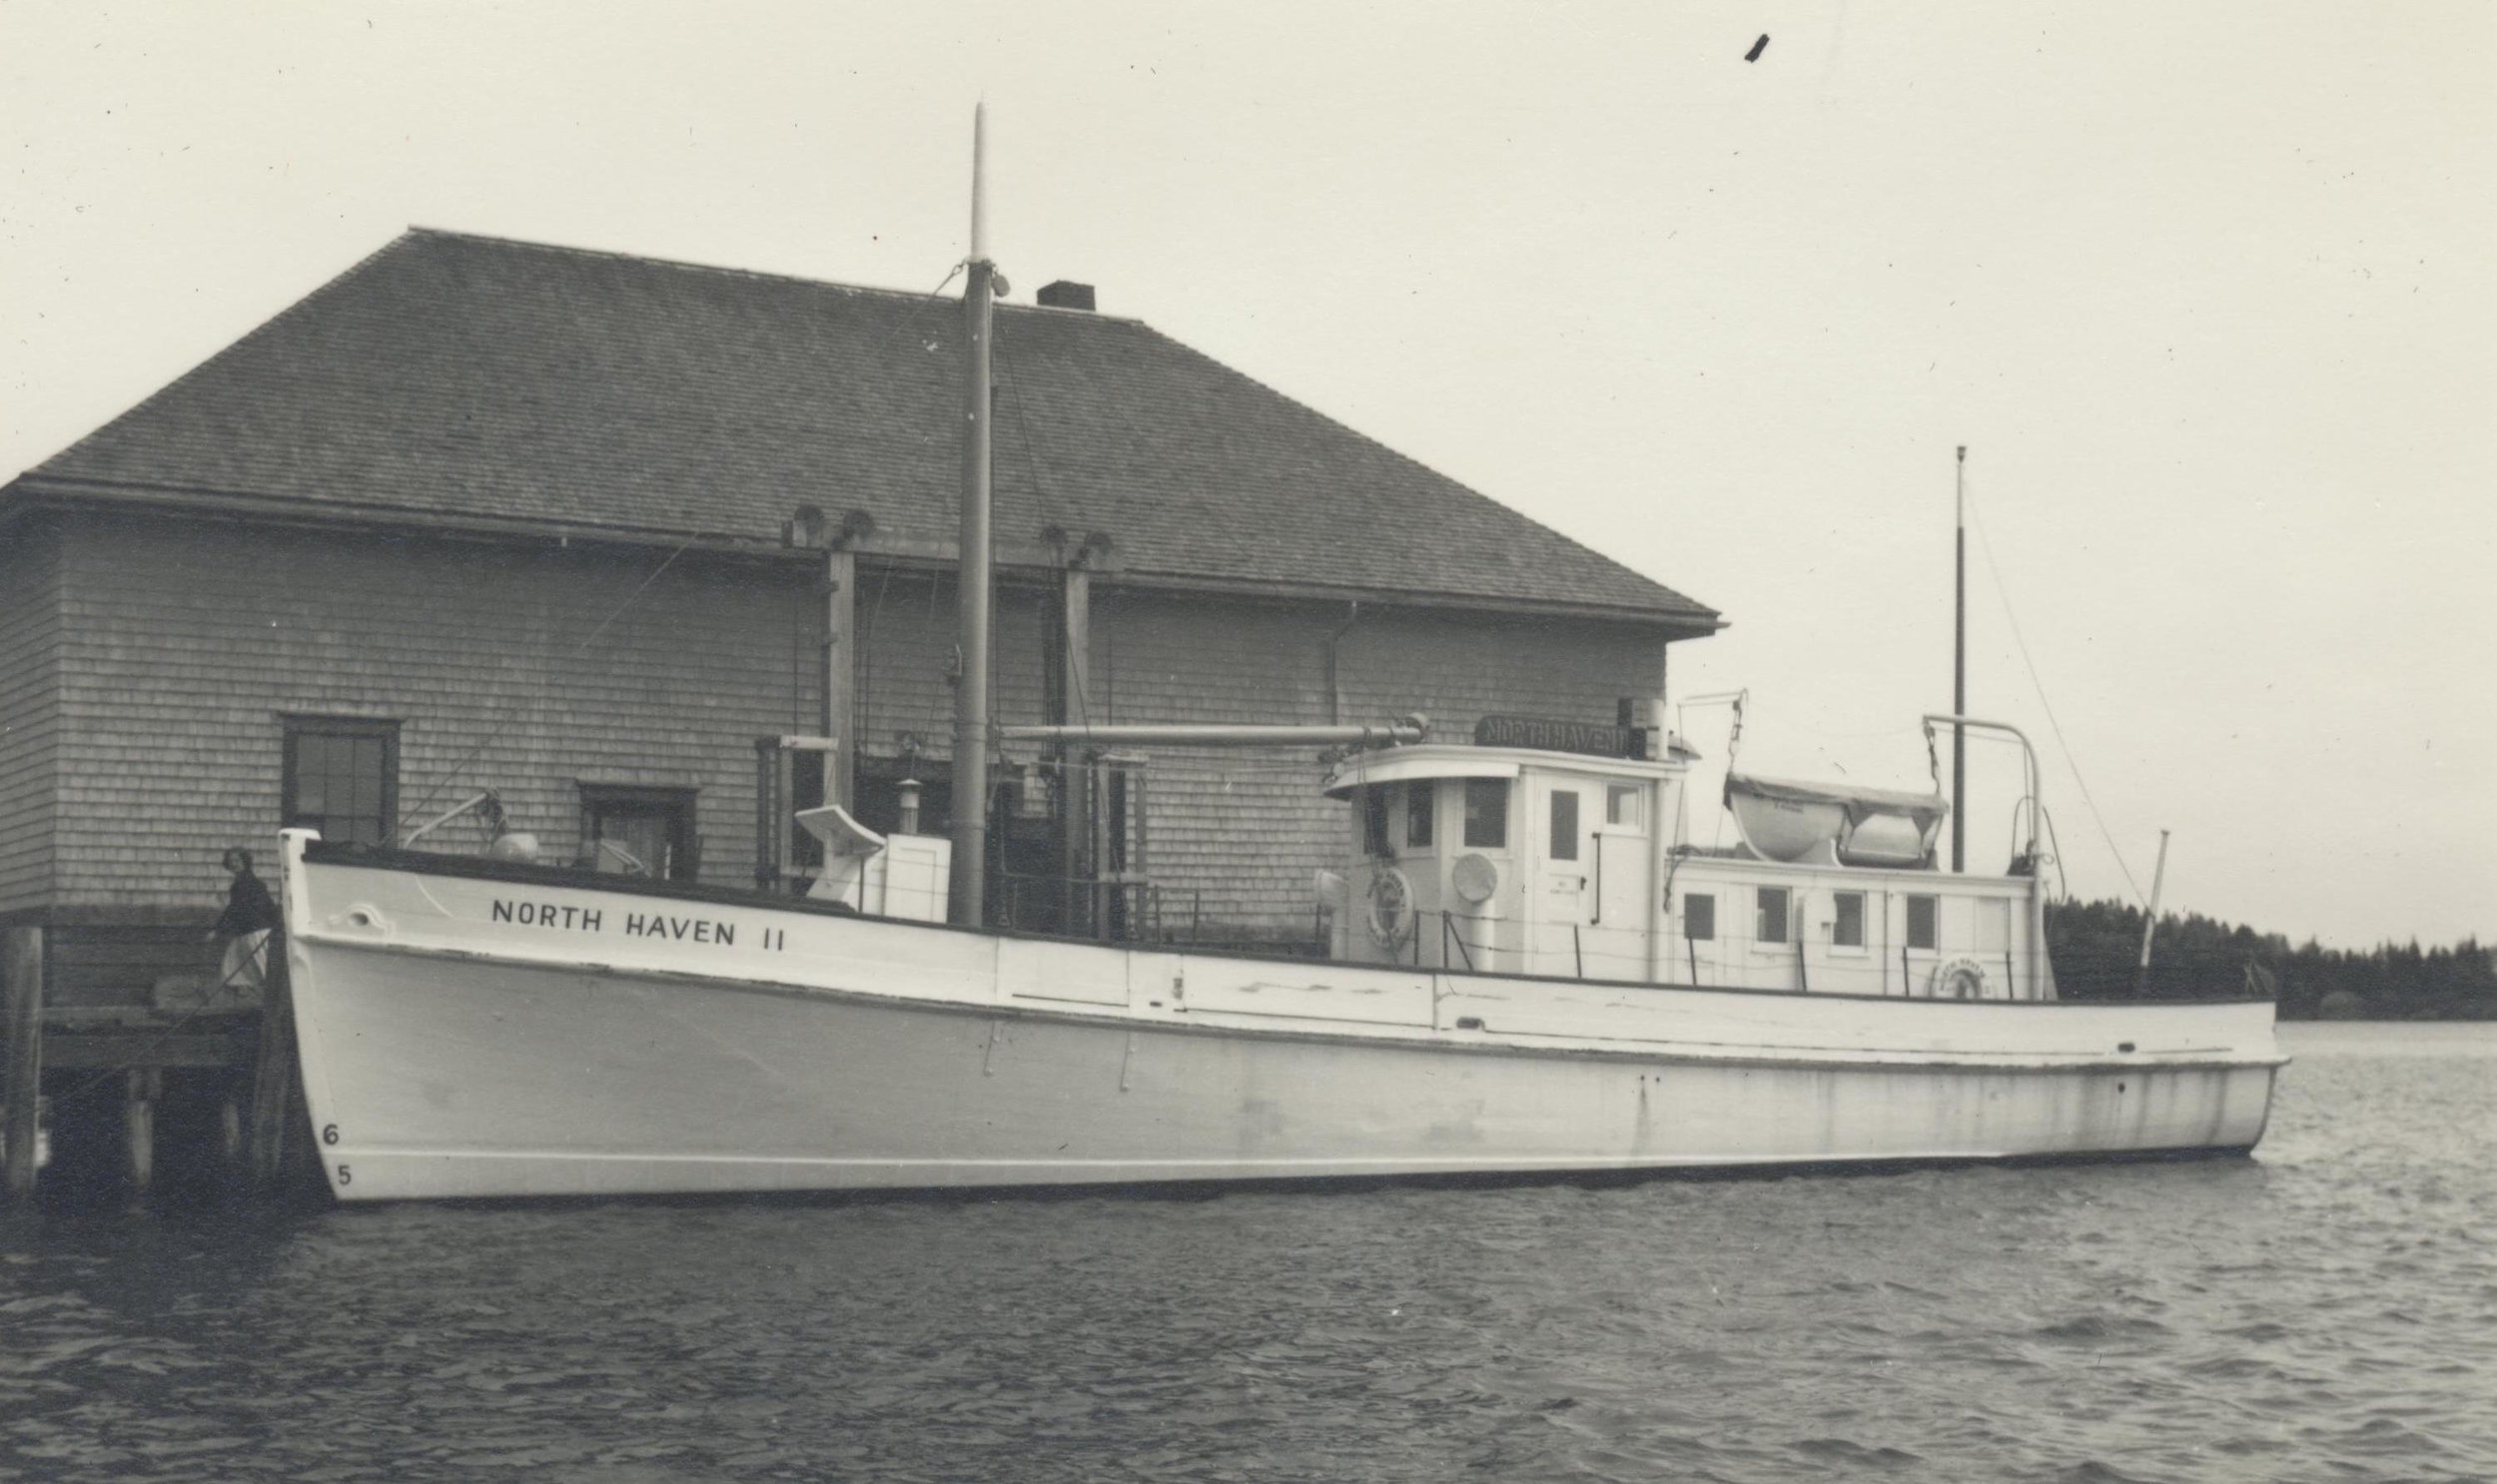 One of the side loading ferries, the North Haven II